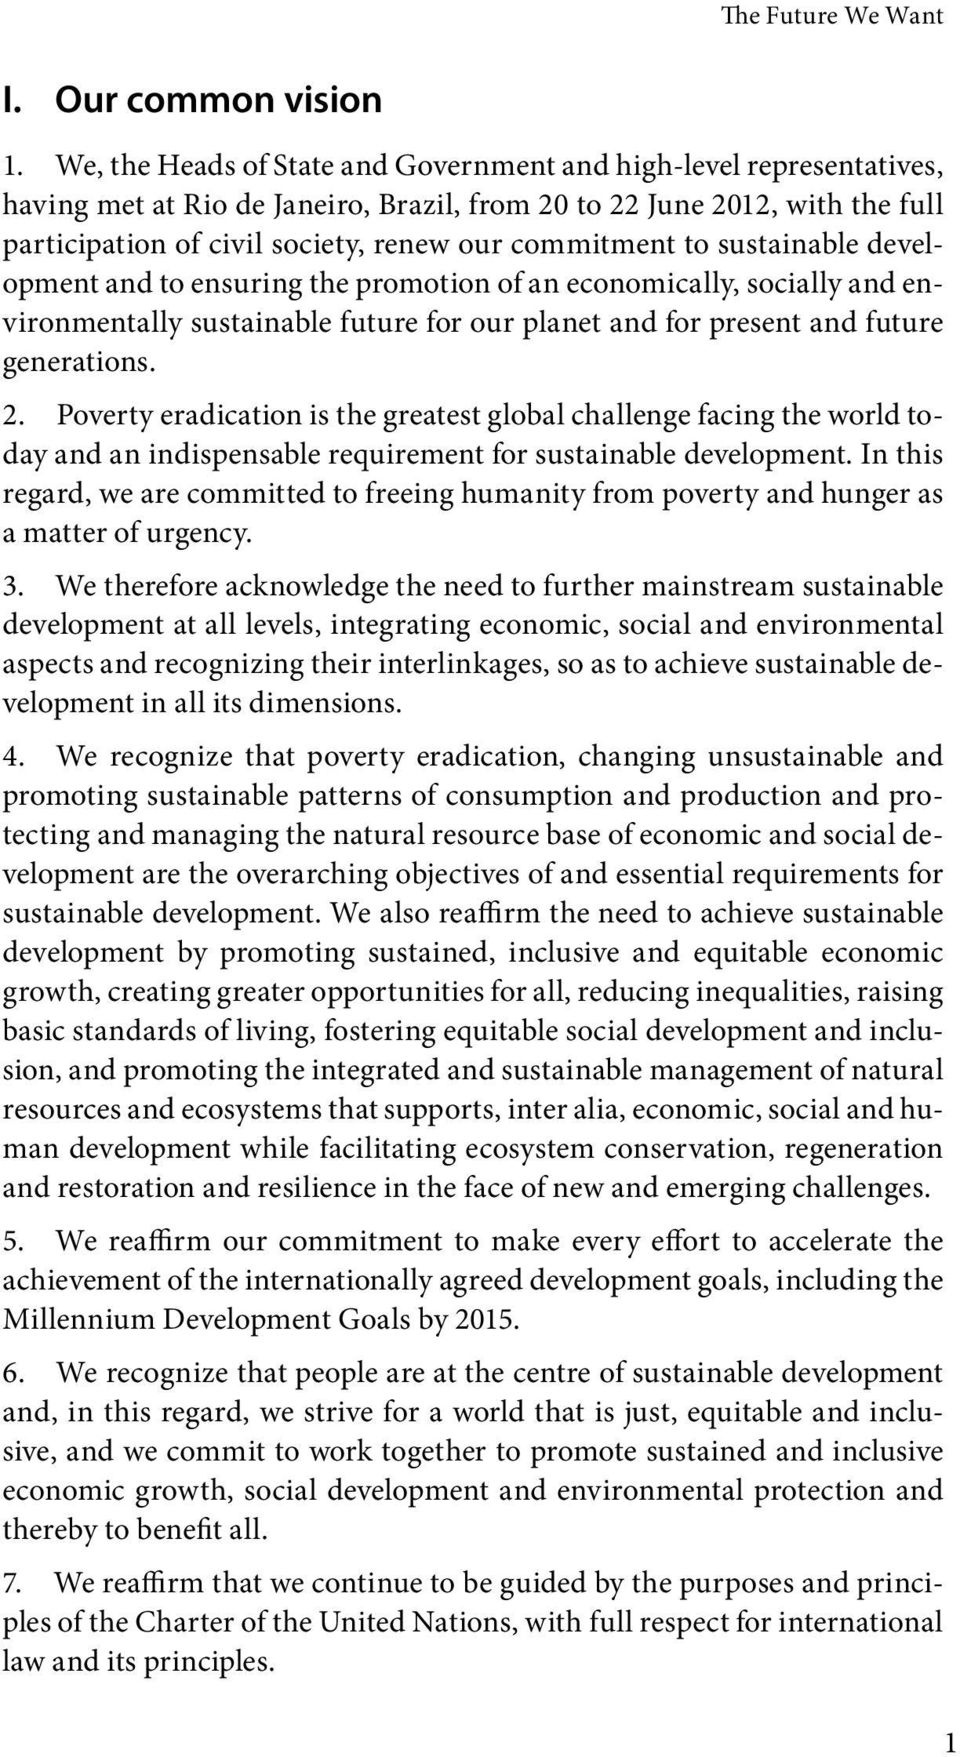 to sustainable development and to ensuring the promotion of an economically, socially and environmentally sustainable future for our planet and for present and future generations. 2.